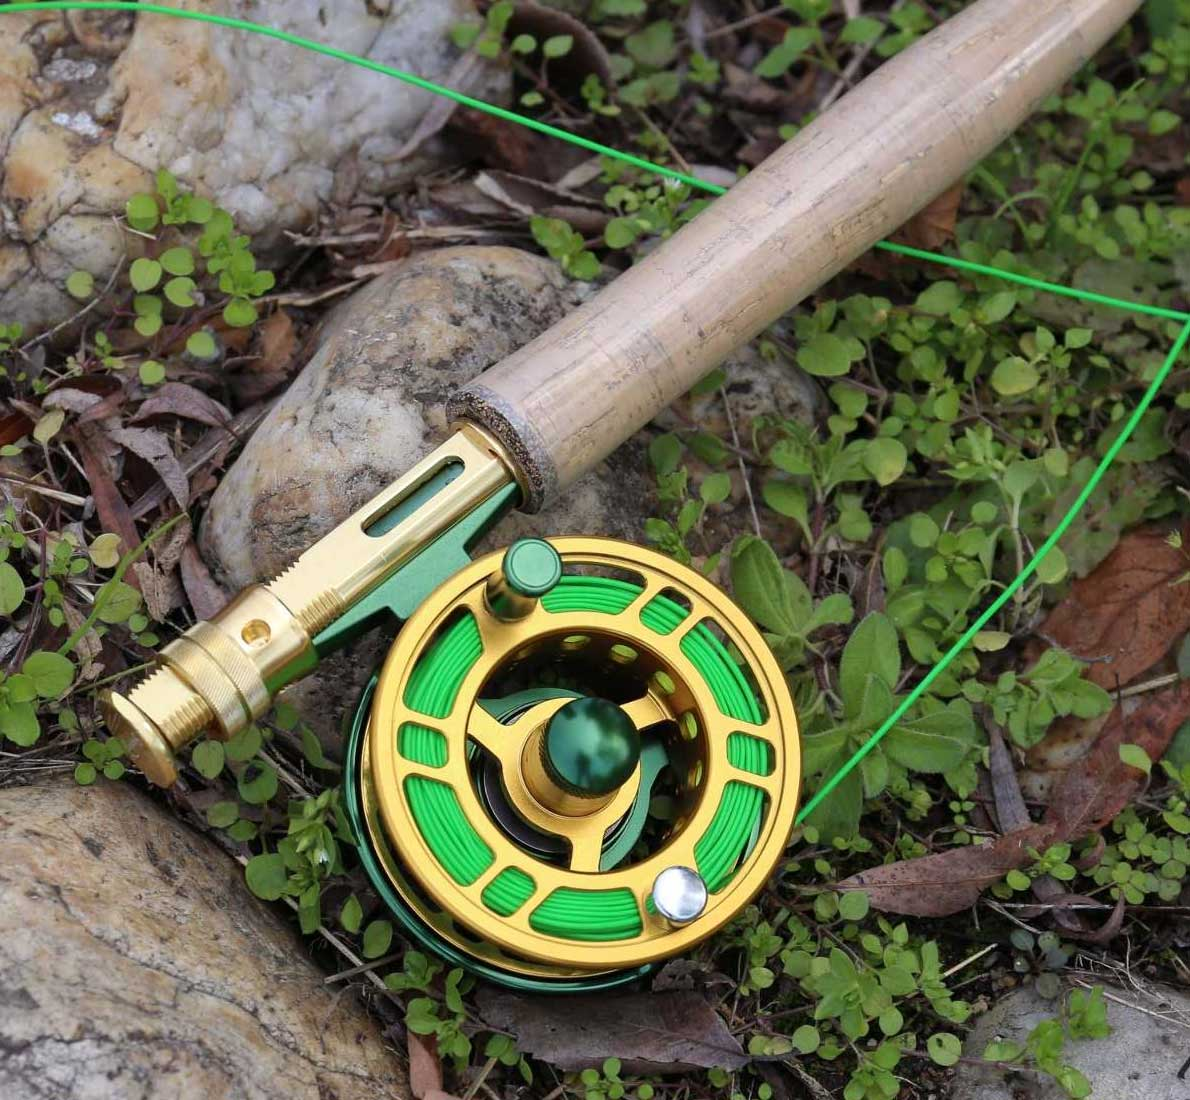 Best fly reel under 100$